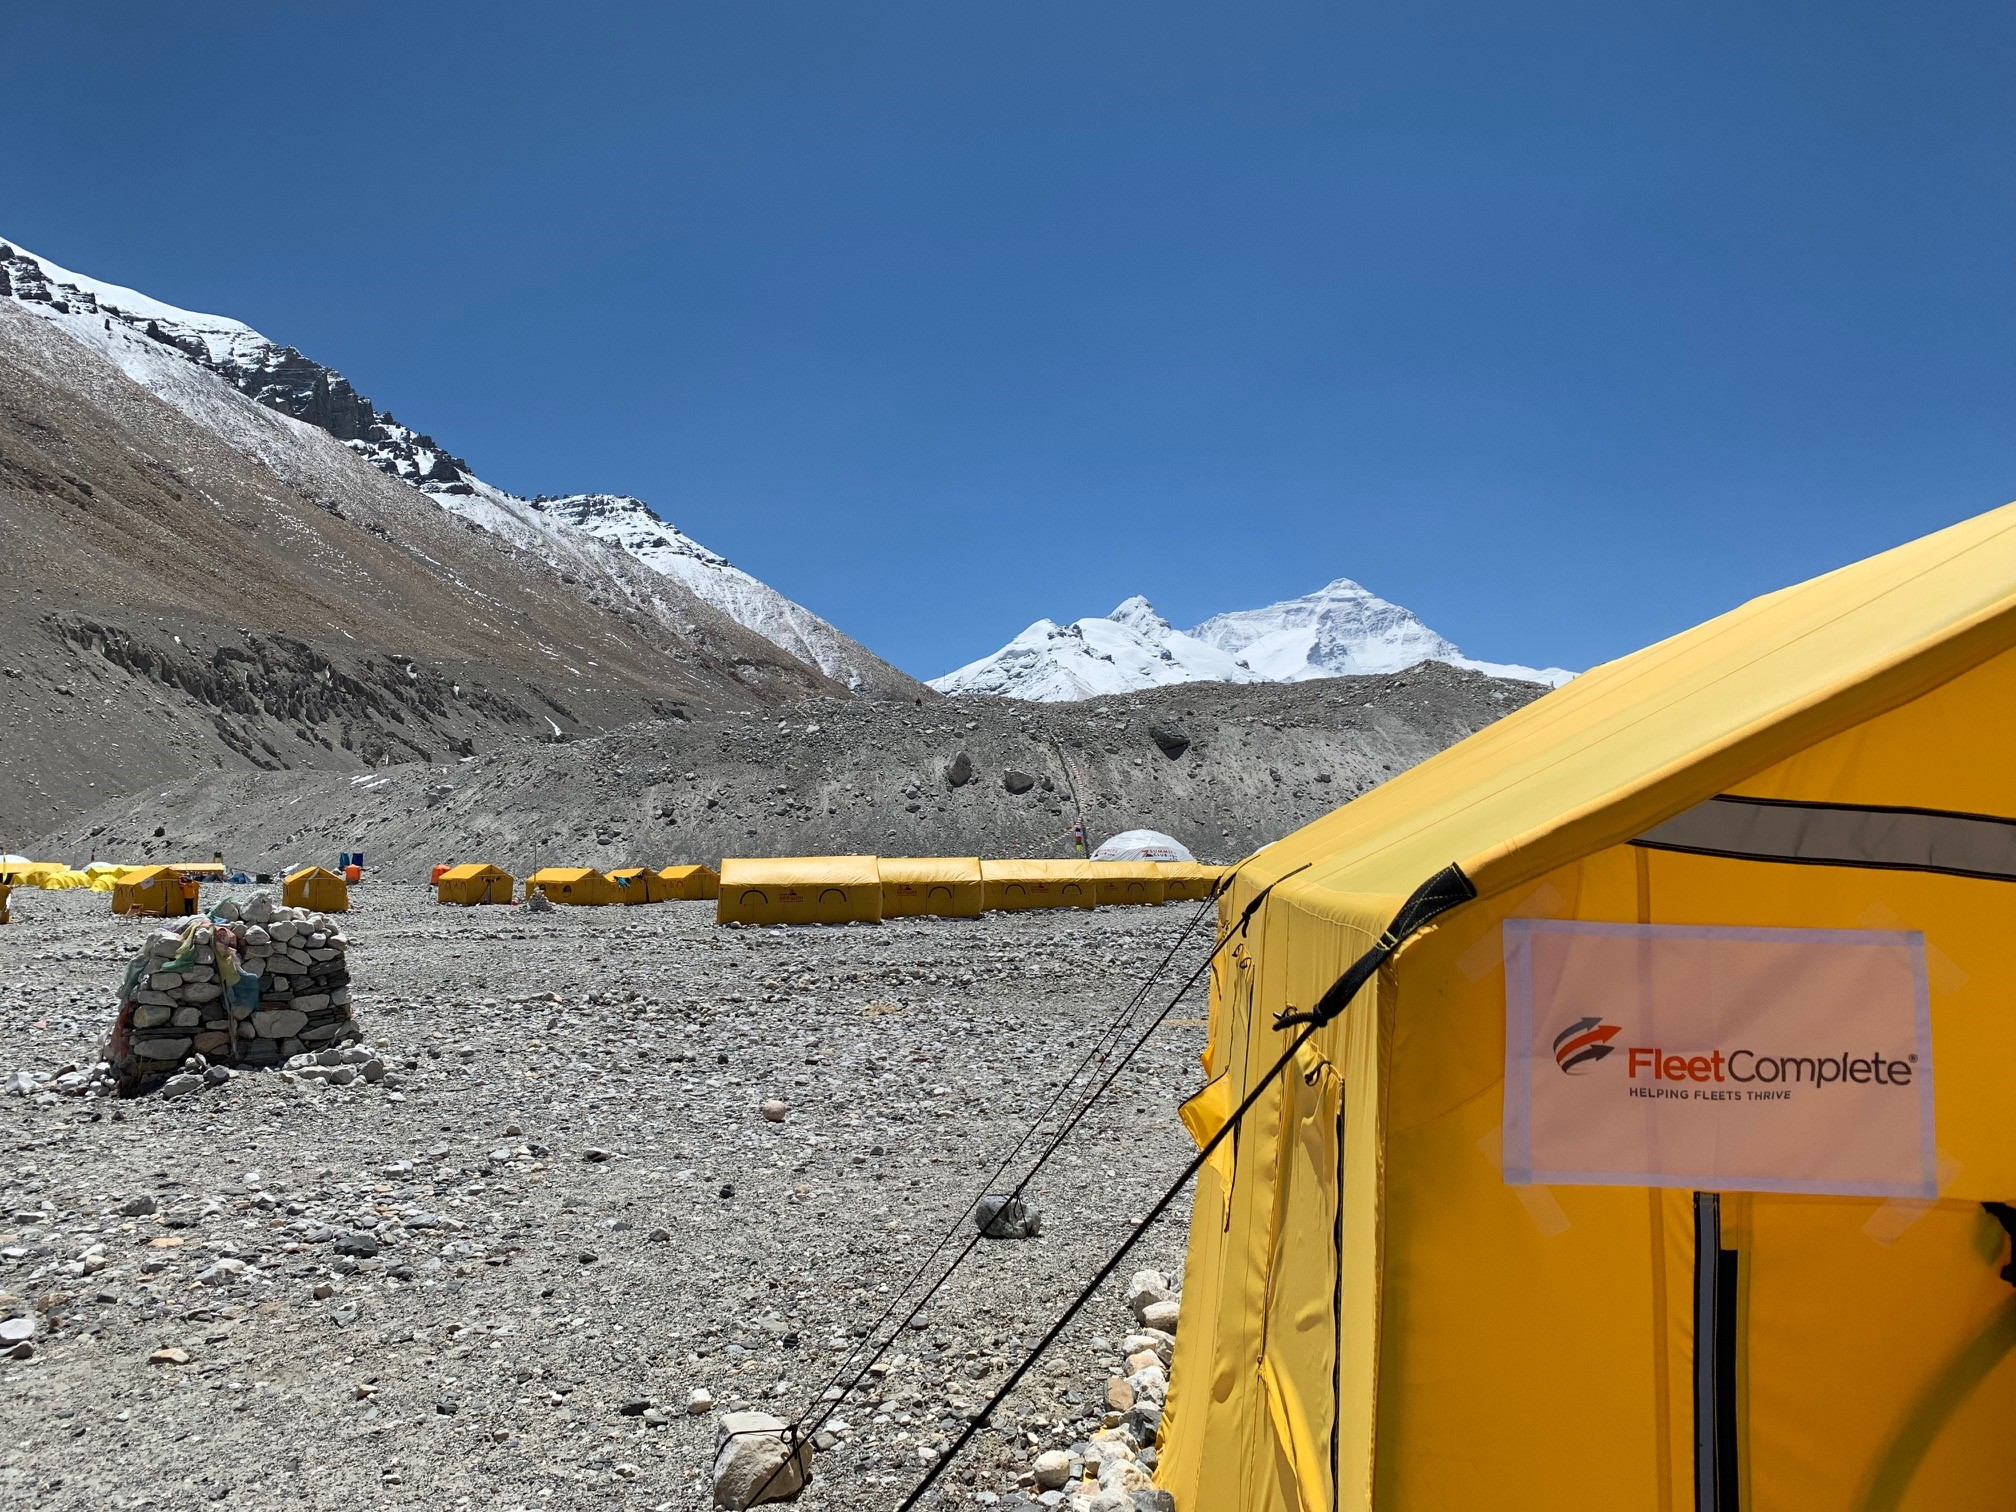 Base camp of Mount Everest with a tent and a Fleet Complete Logo display.